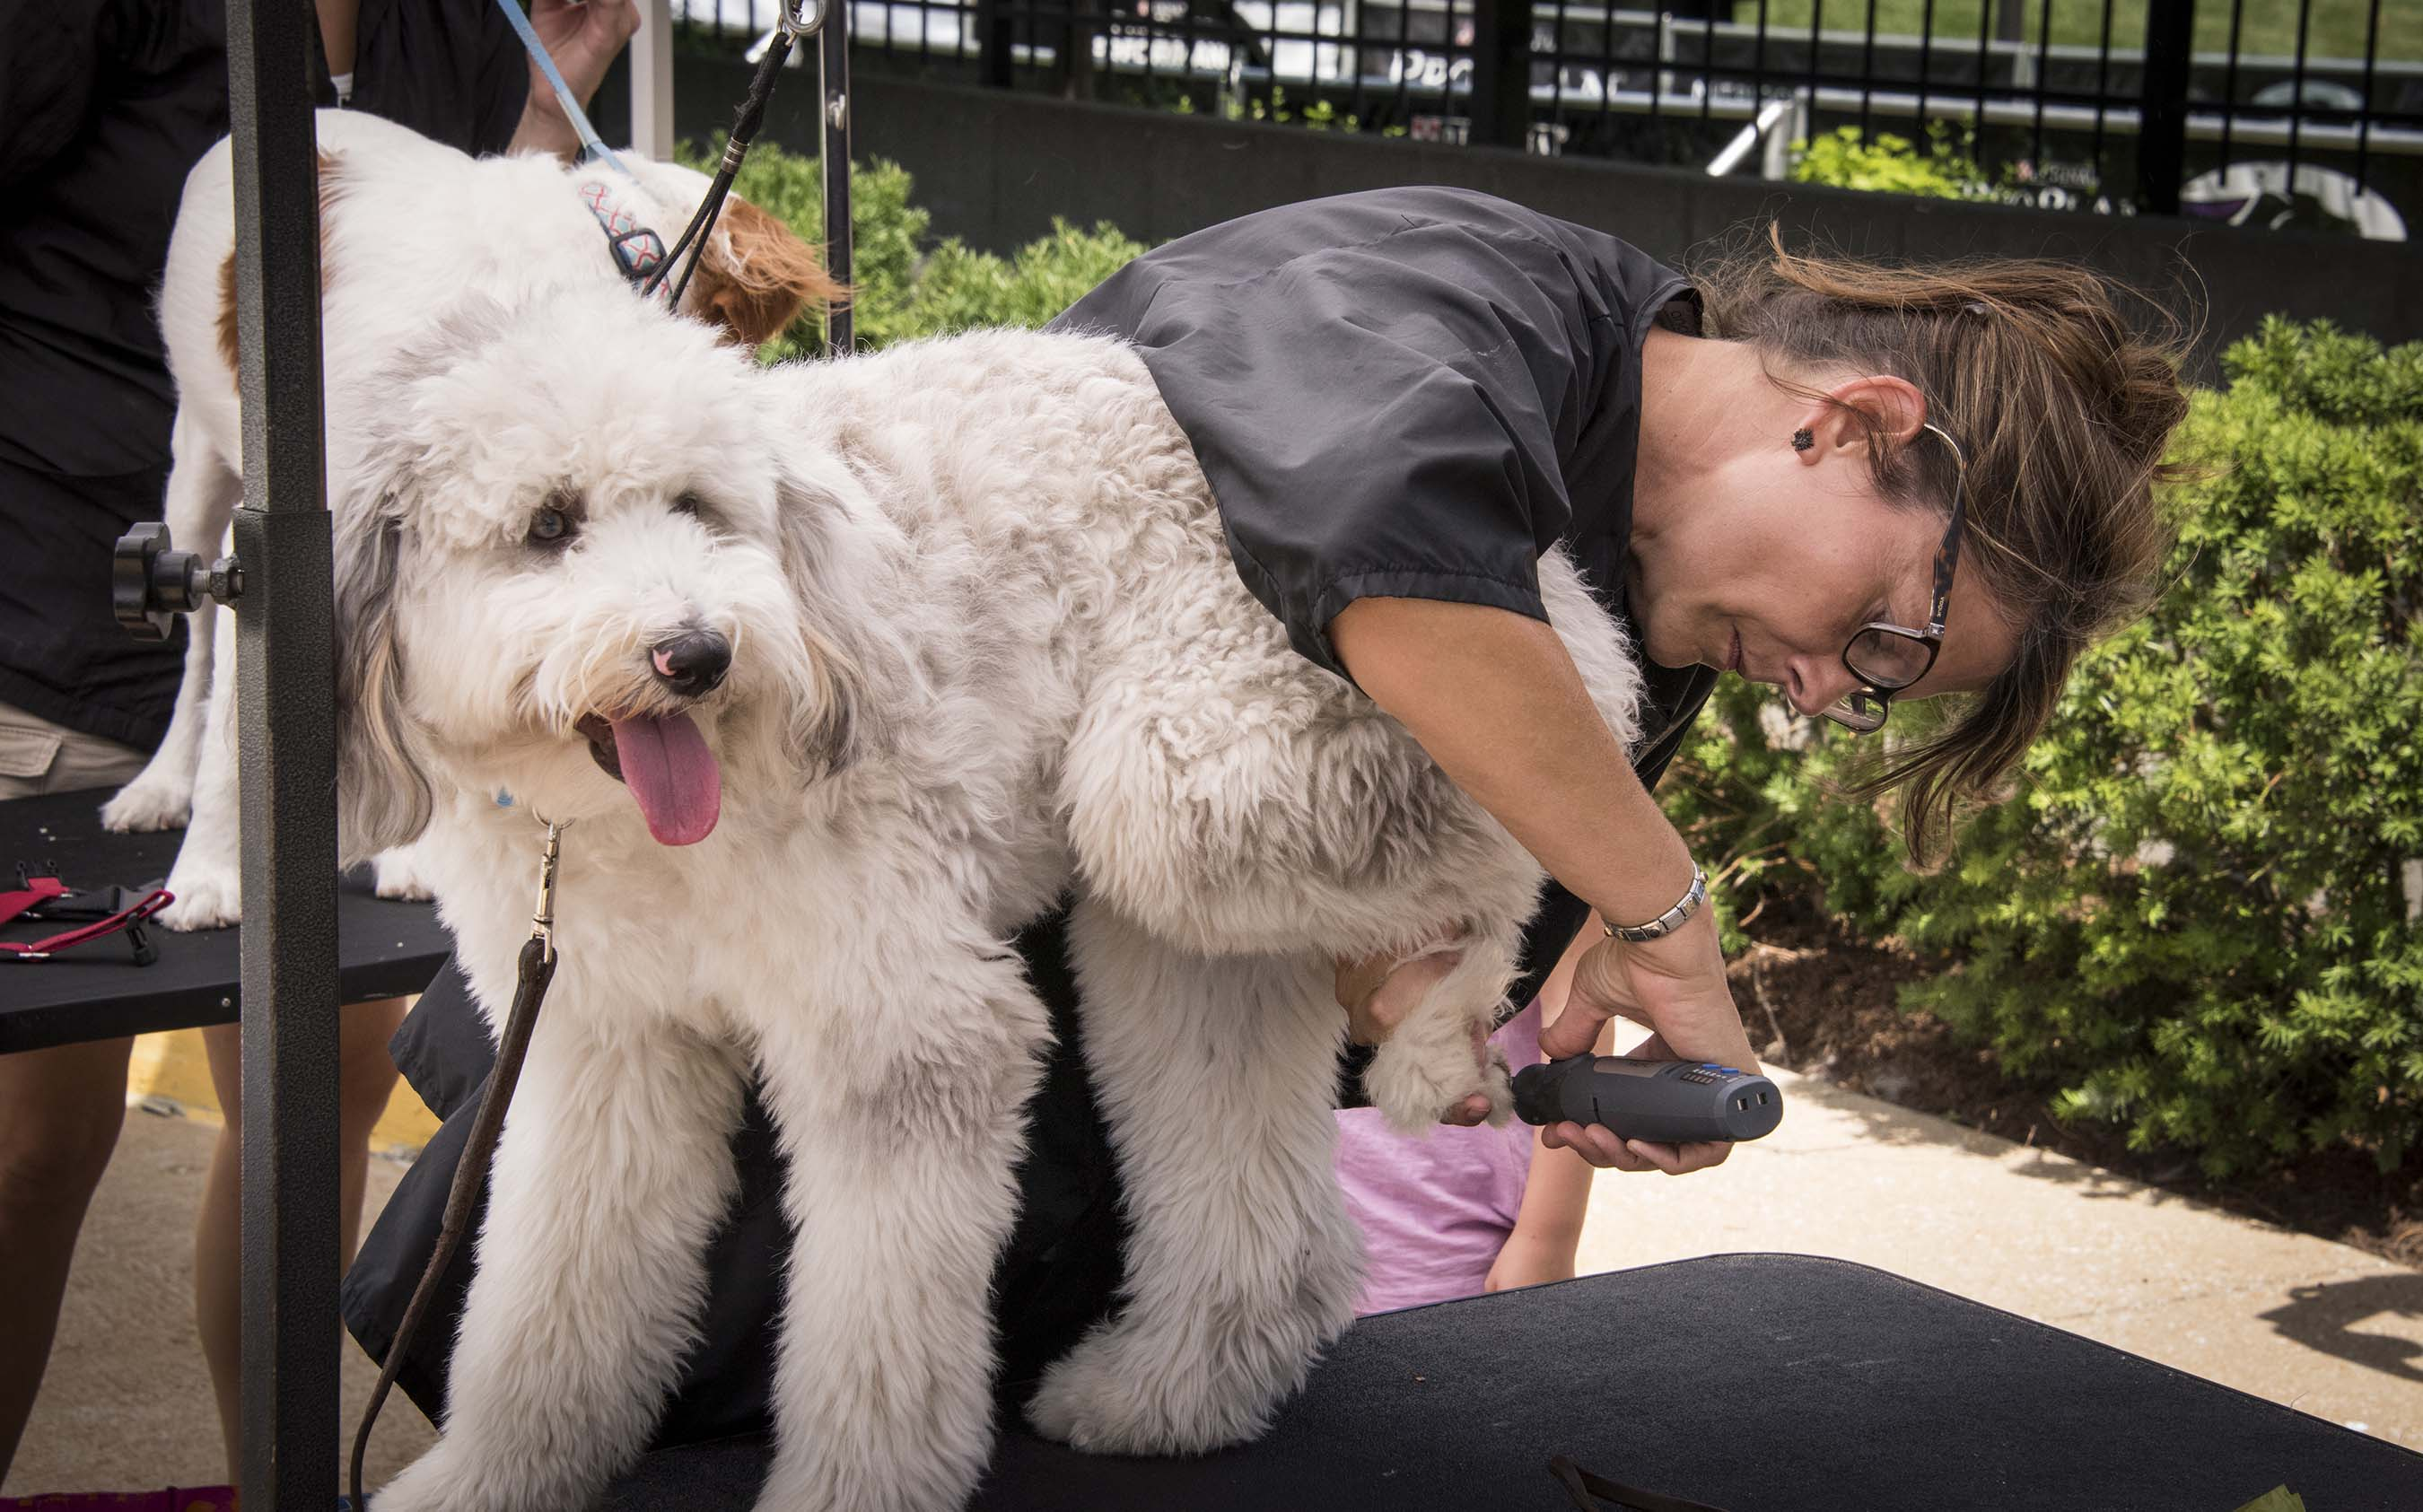 Purina helped celebrate #petsatwork with fun activities at the Purina headquarters in St. Louis such as puppy portraits, mobile grooming and a Yappy Hour for associates and their pets